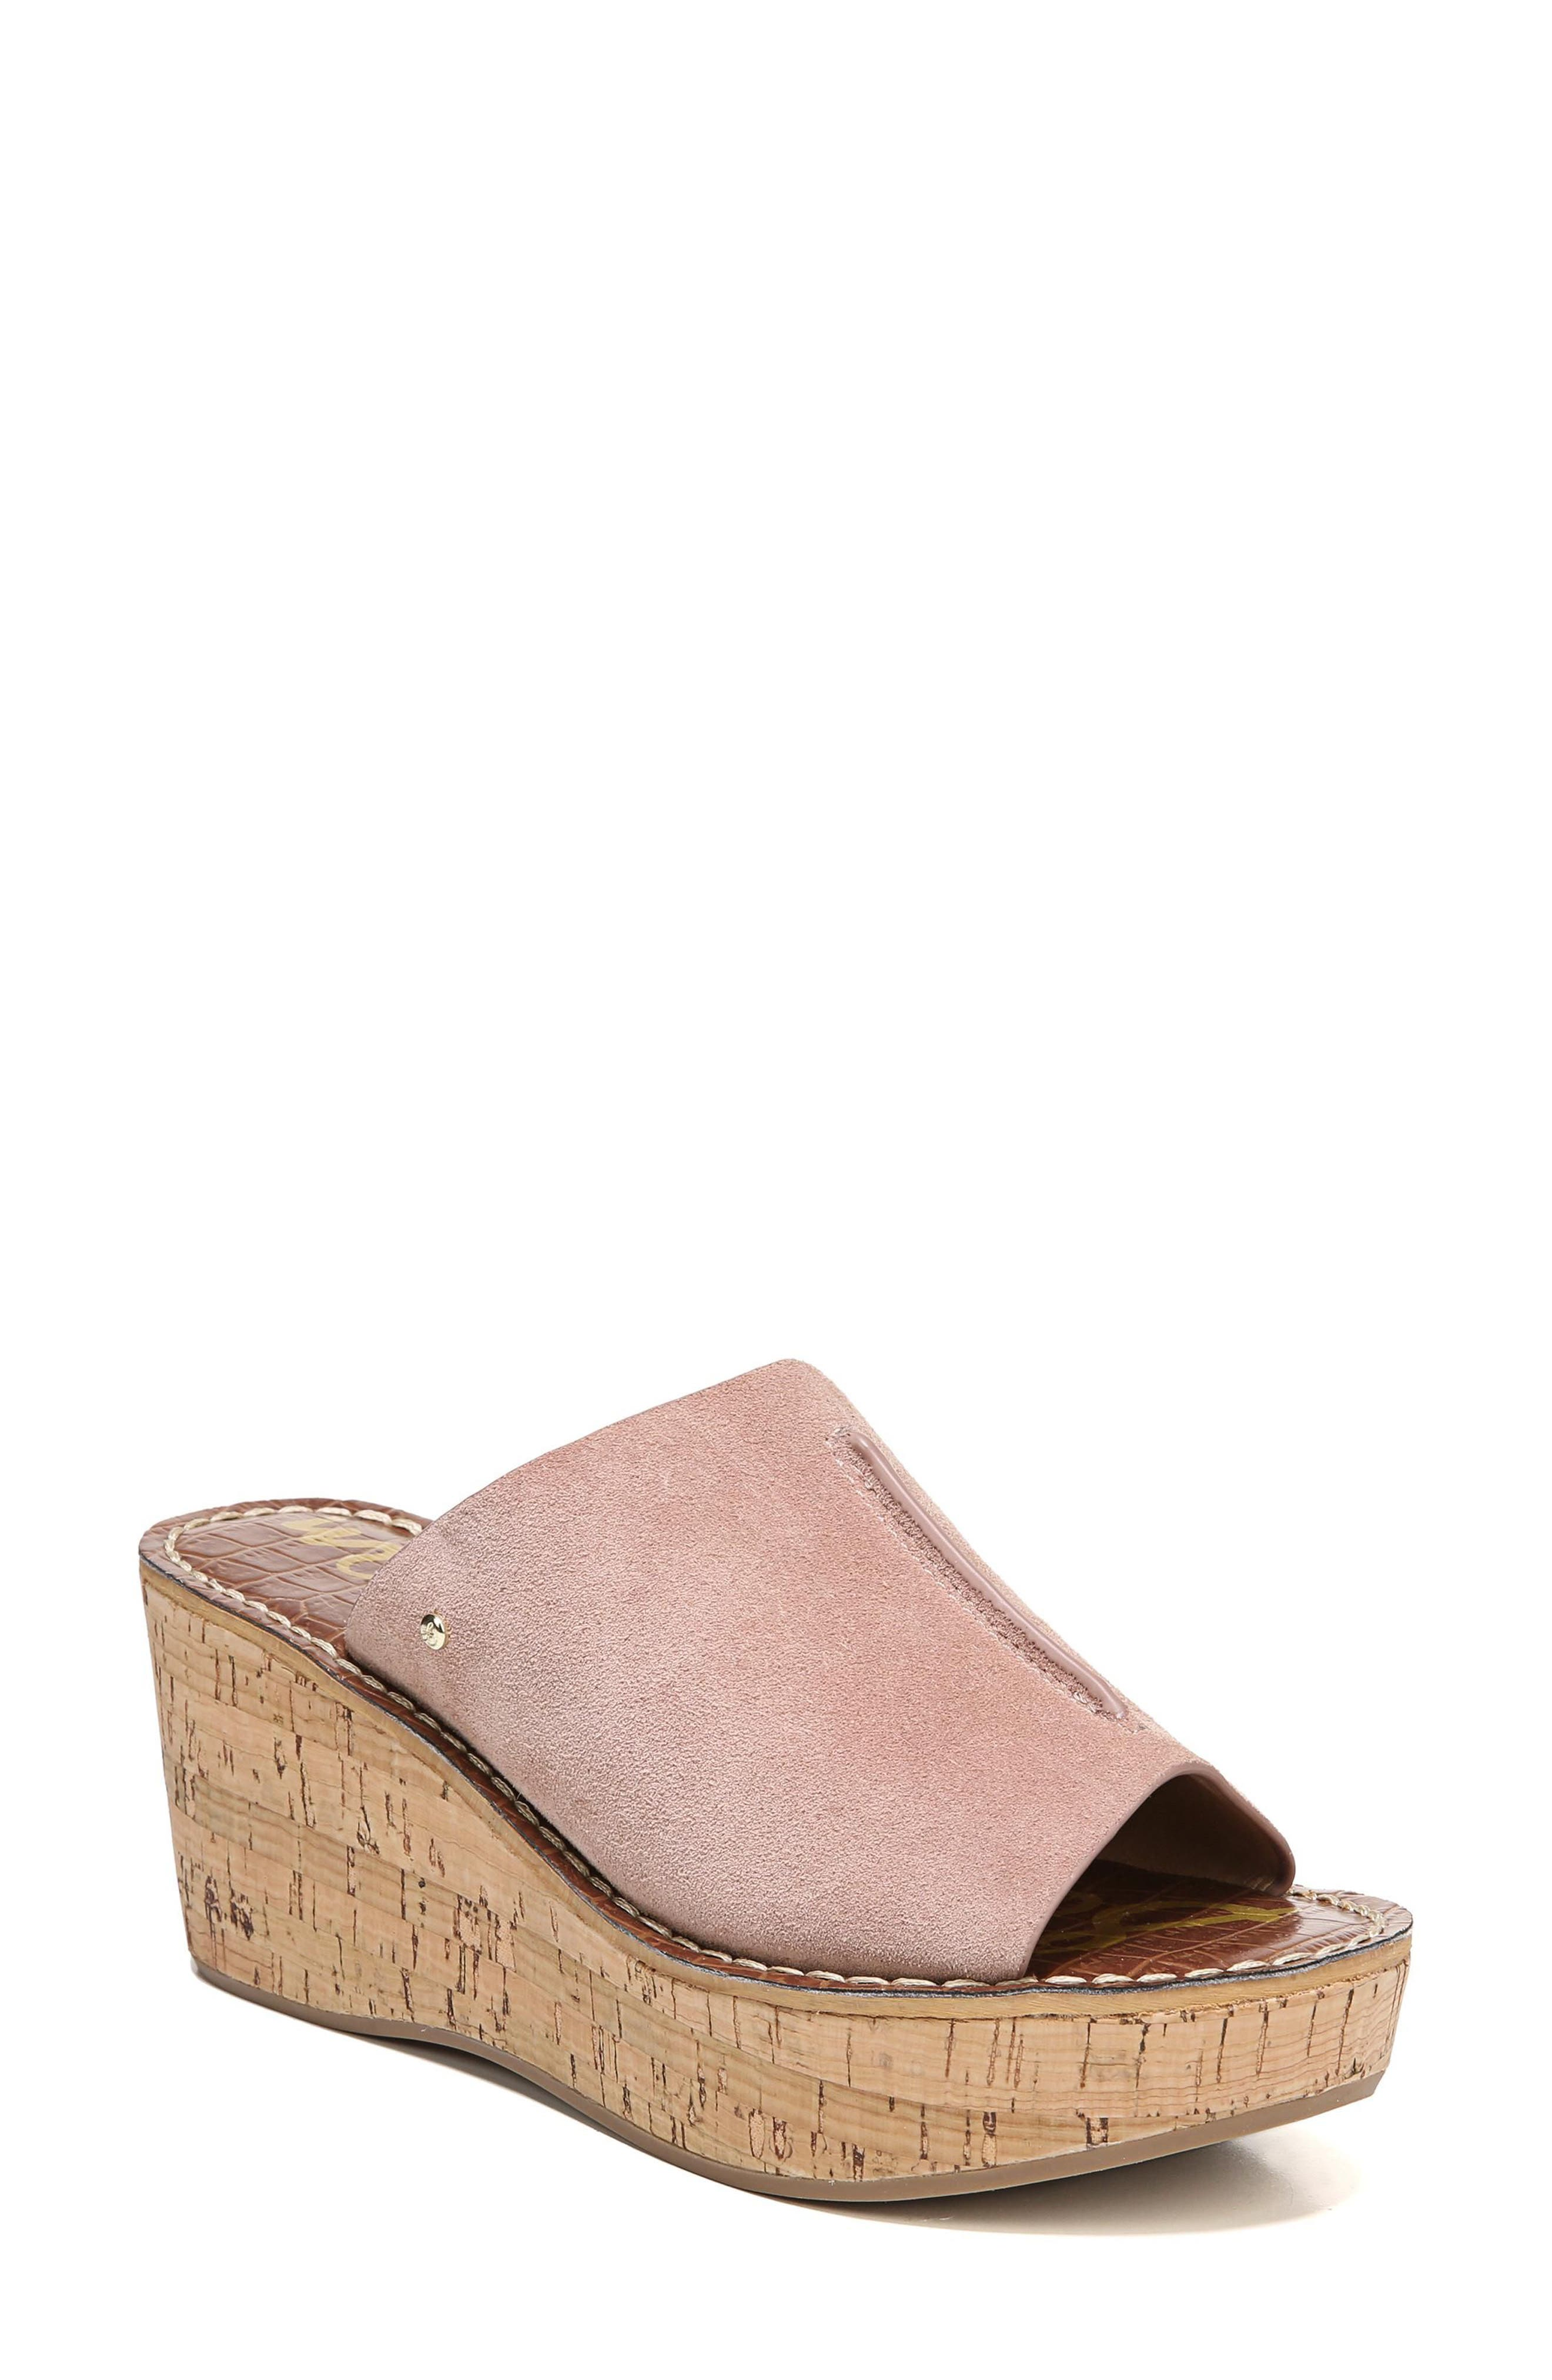 Ranger Platform Sandal,                         Main,                         color, Dusty Rose Suede